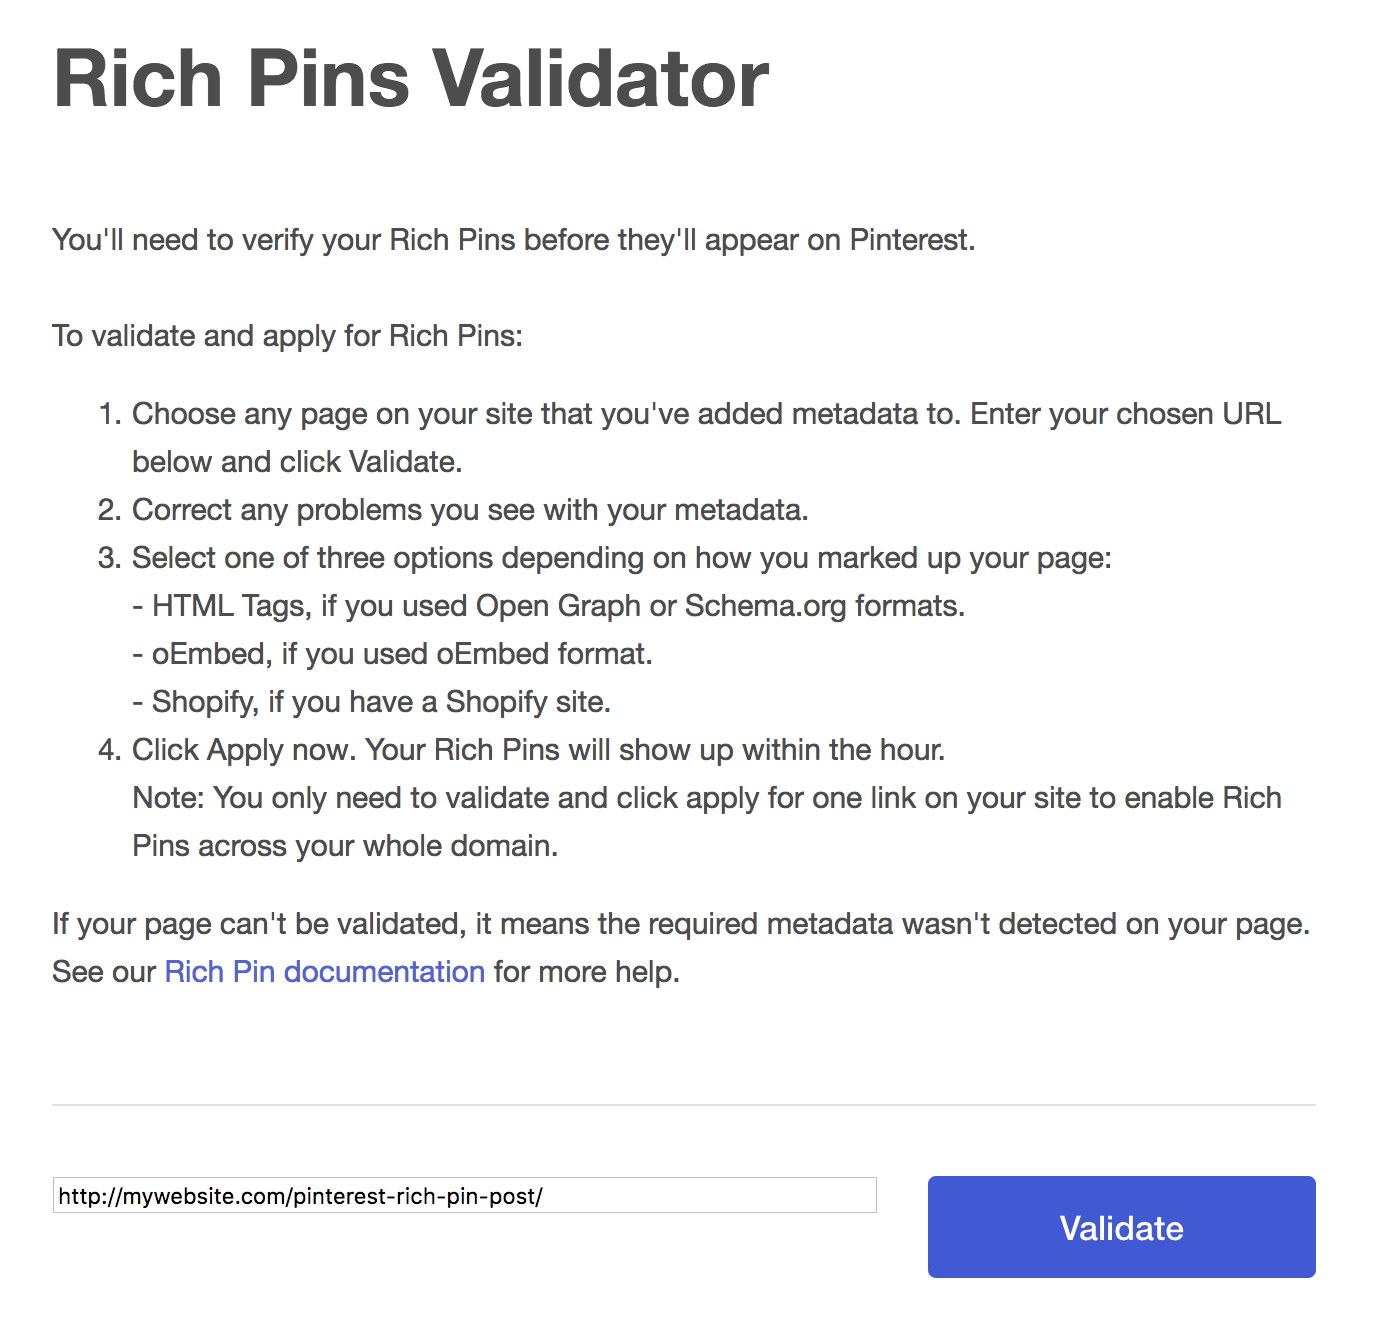 Validating Rich Pins on Pinterest